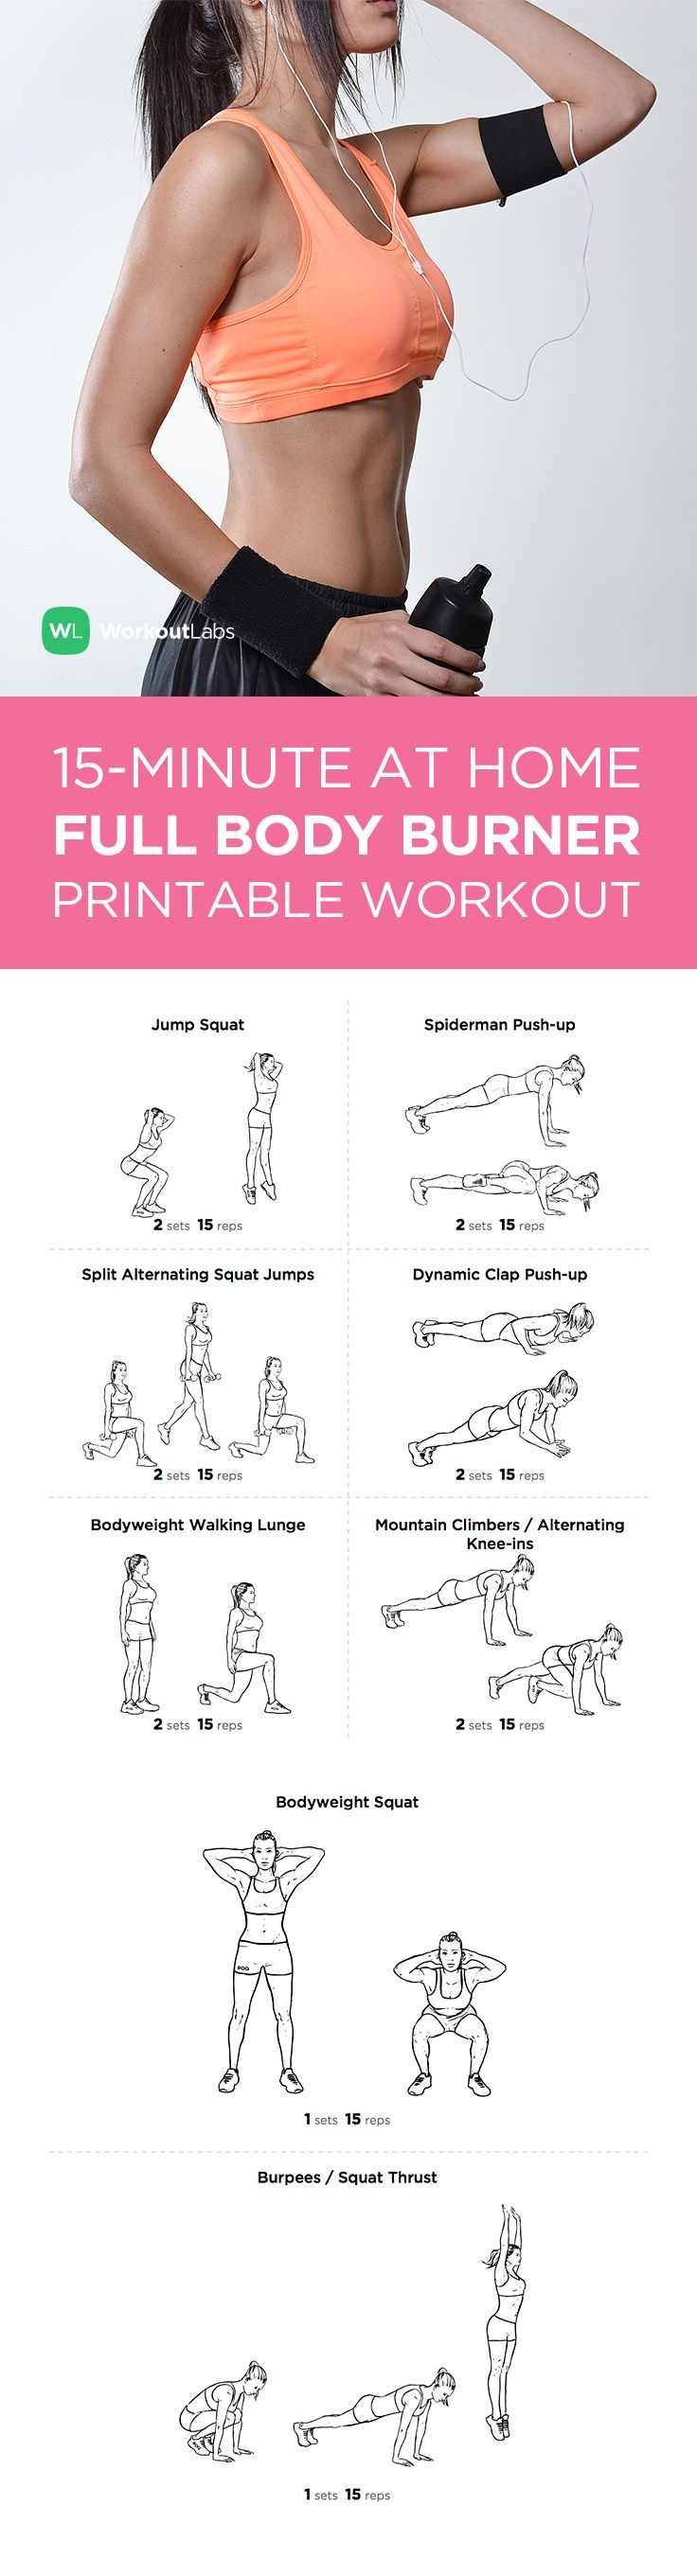 Home Workout Plan For Men best 20+ at home workout plan ideas on pinterest | 30 day workout